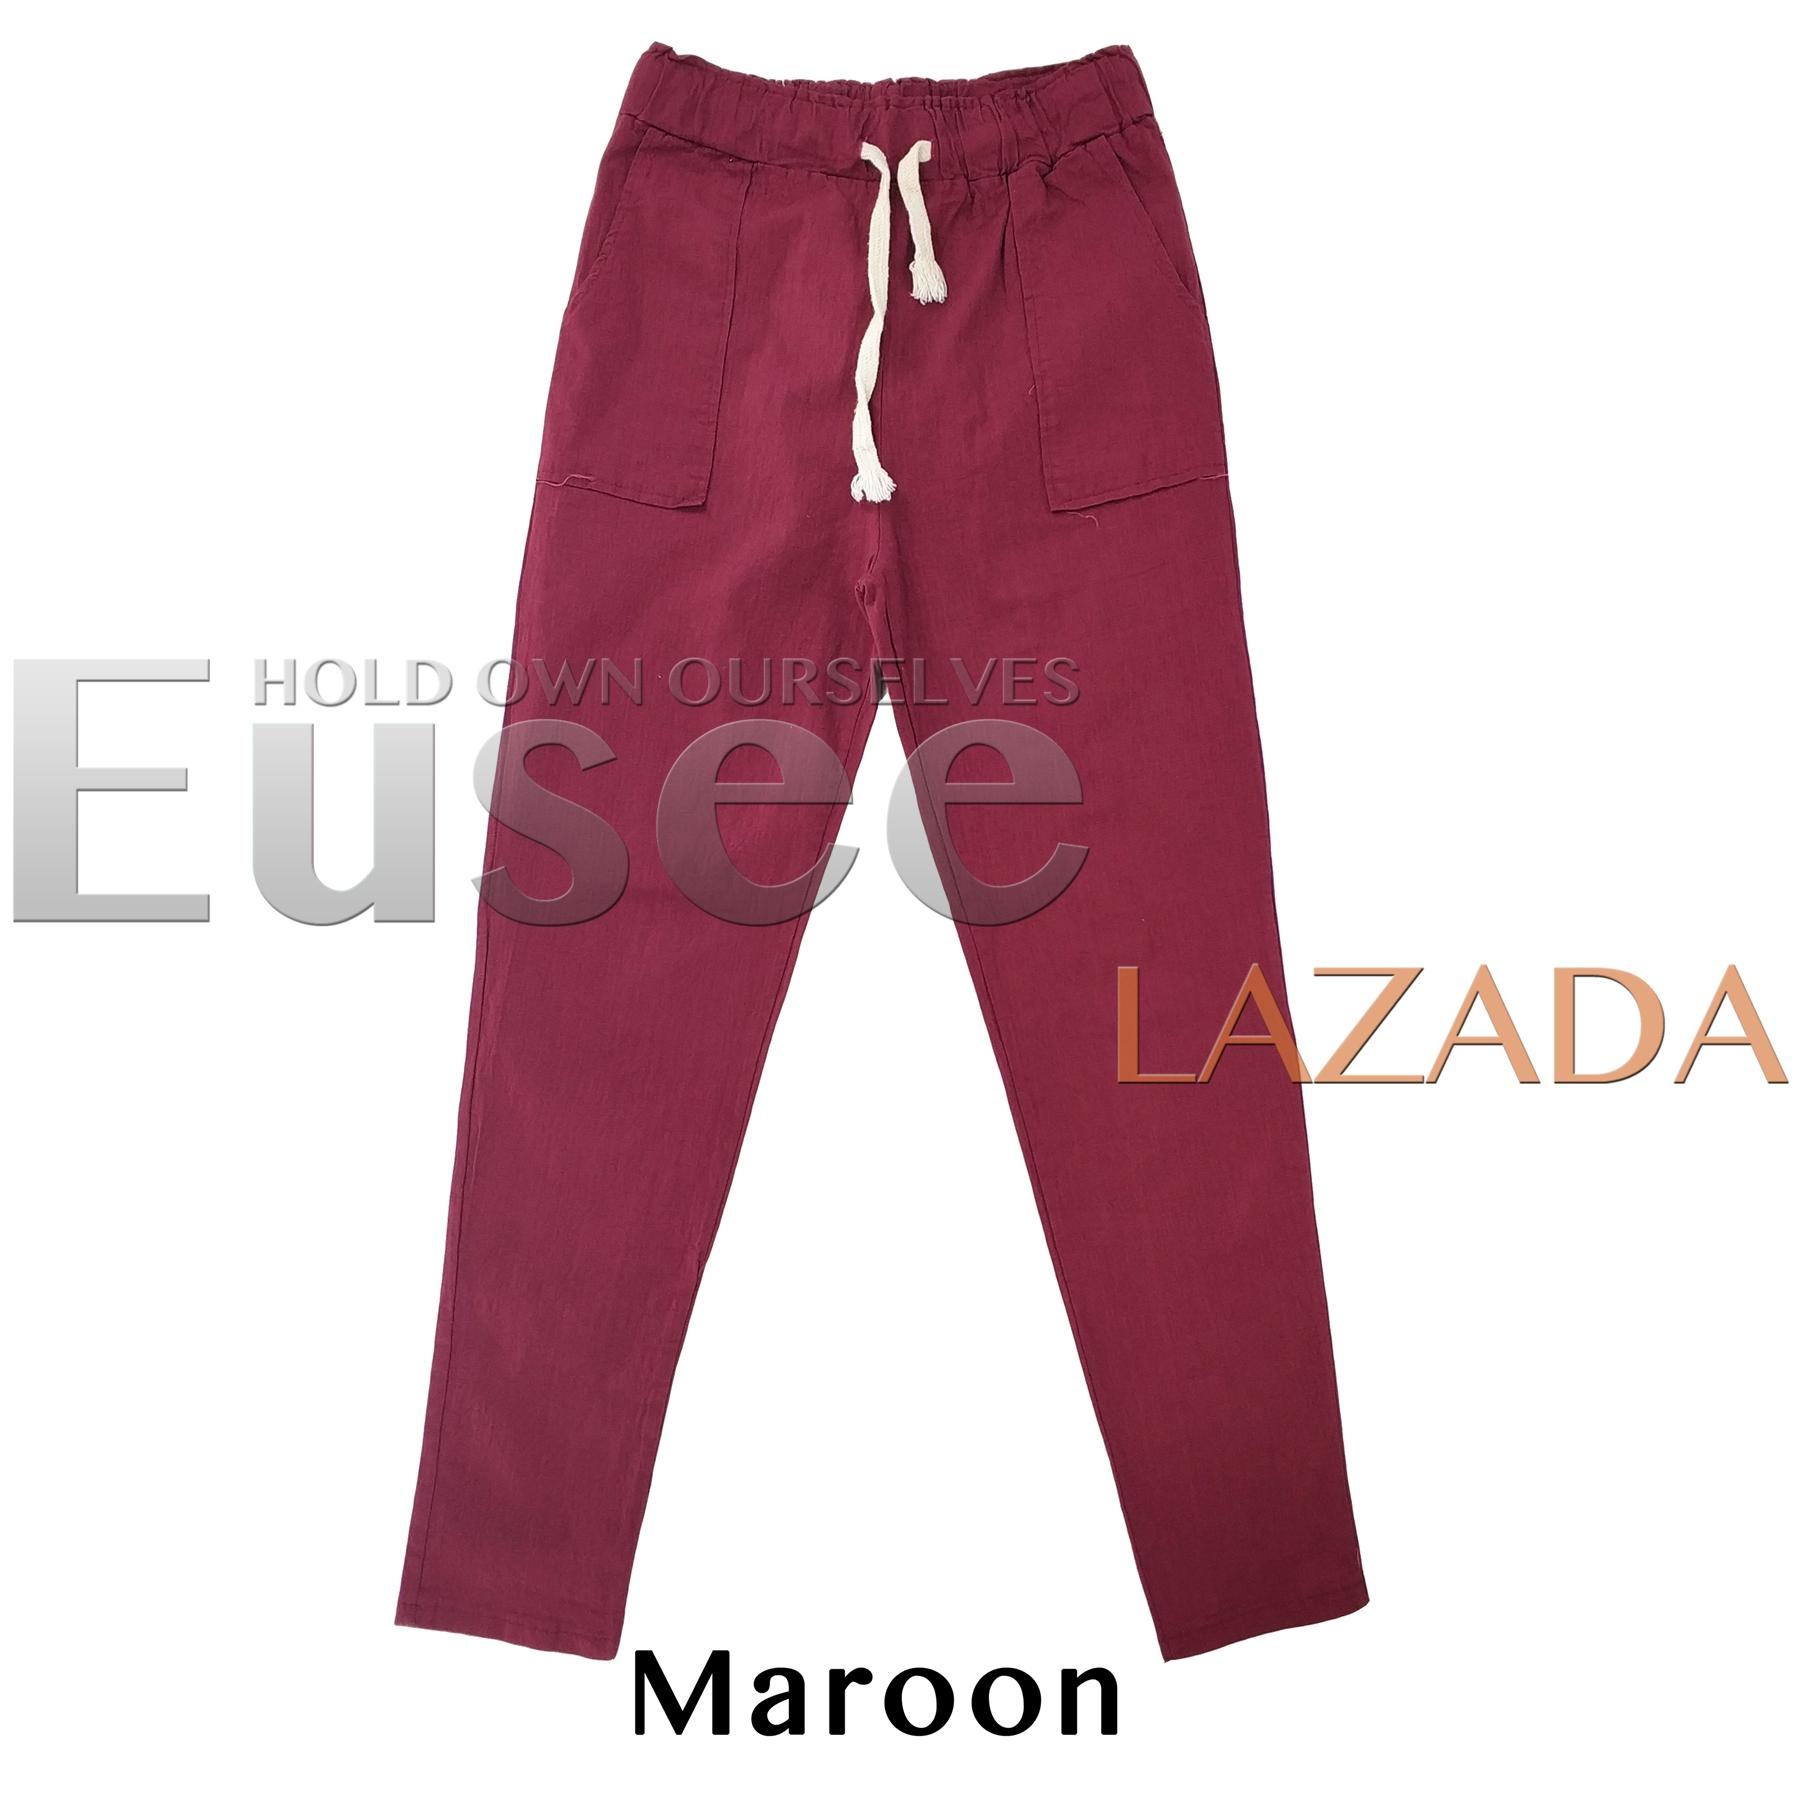 e68d144ed Chinos for Women for sale - Womens Chinos Online Deals & Prices in ...